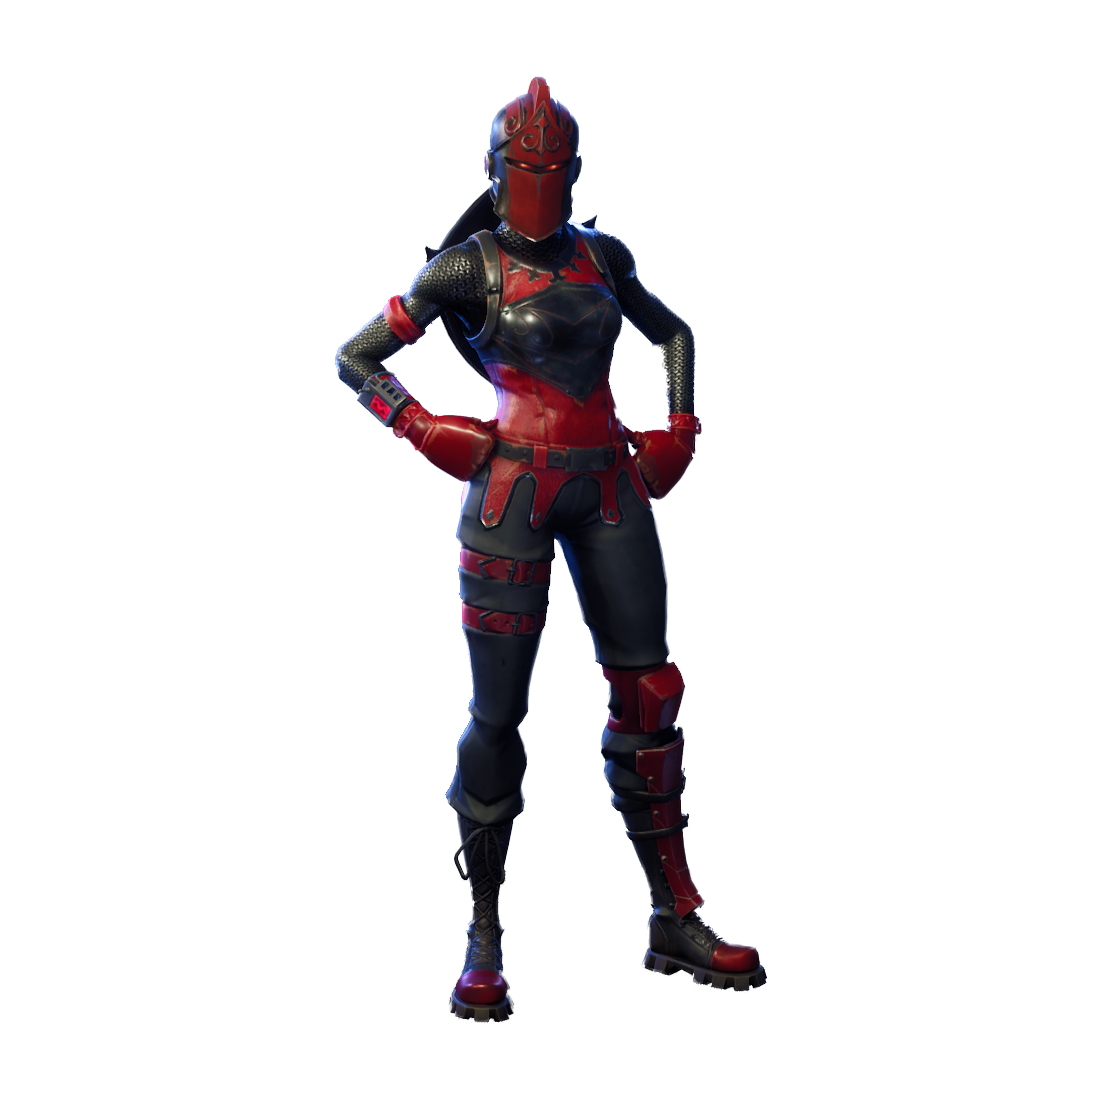 Fortnite Red Knight PNG Image.